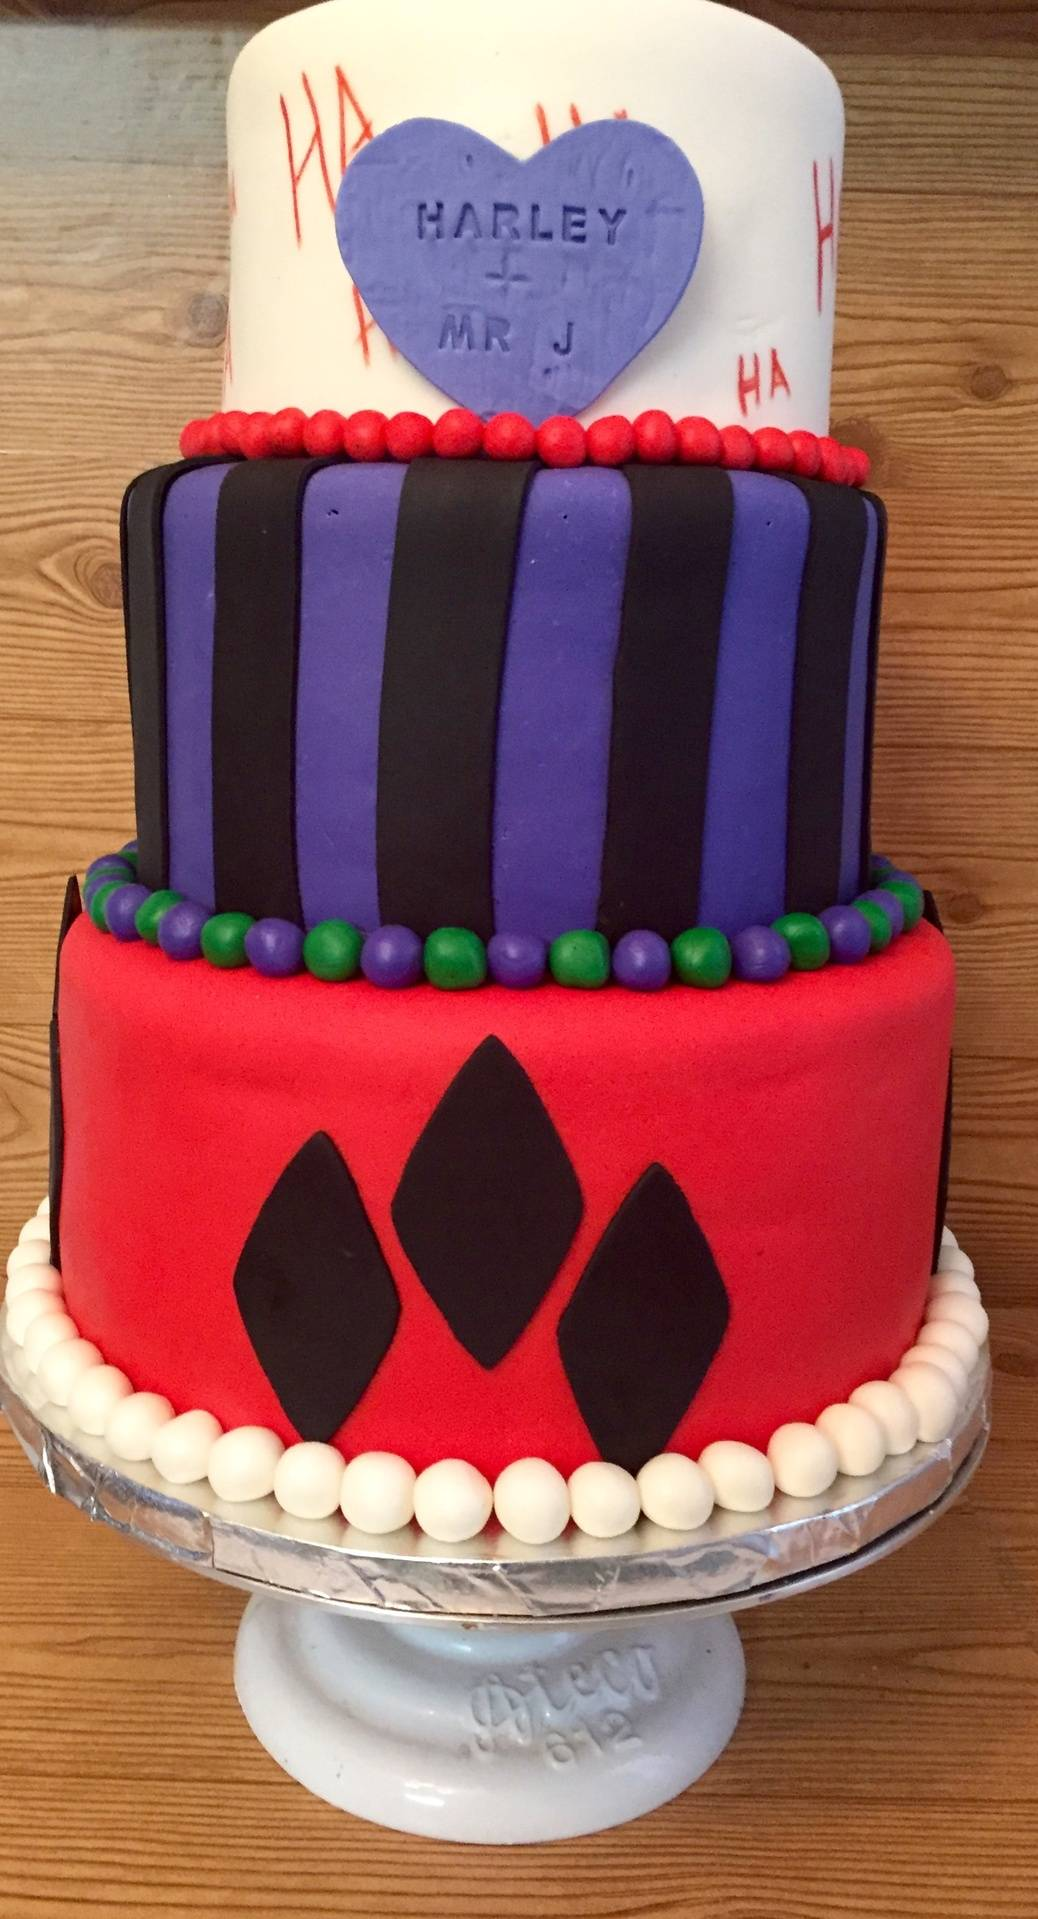 Joker and Harley Quinn themed wedding cake